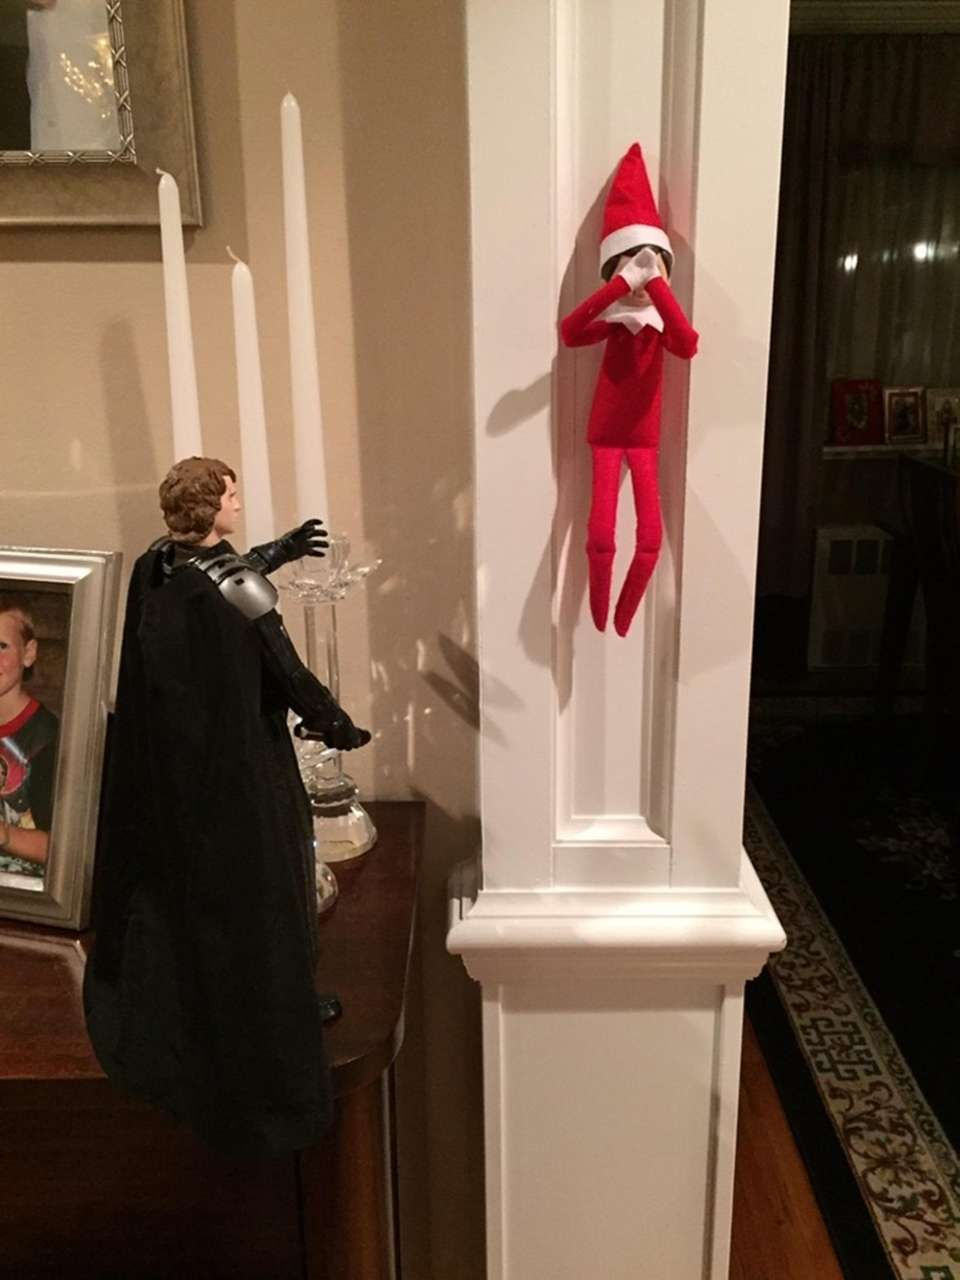 Elf gets in trouble with the dark side